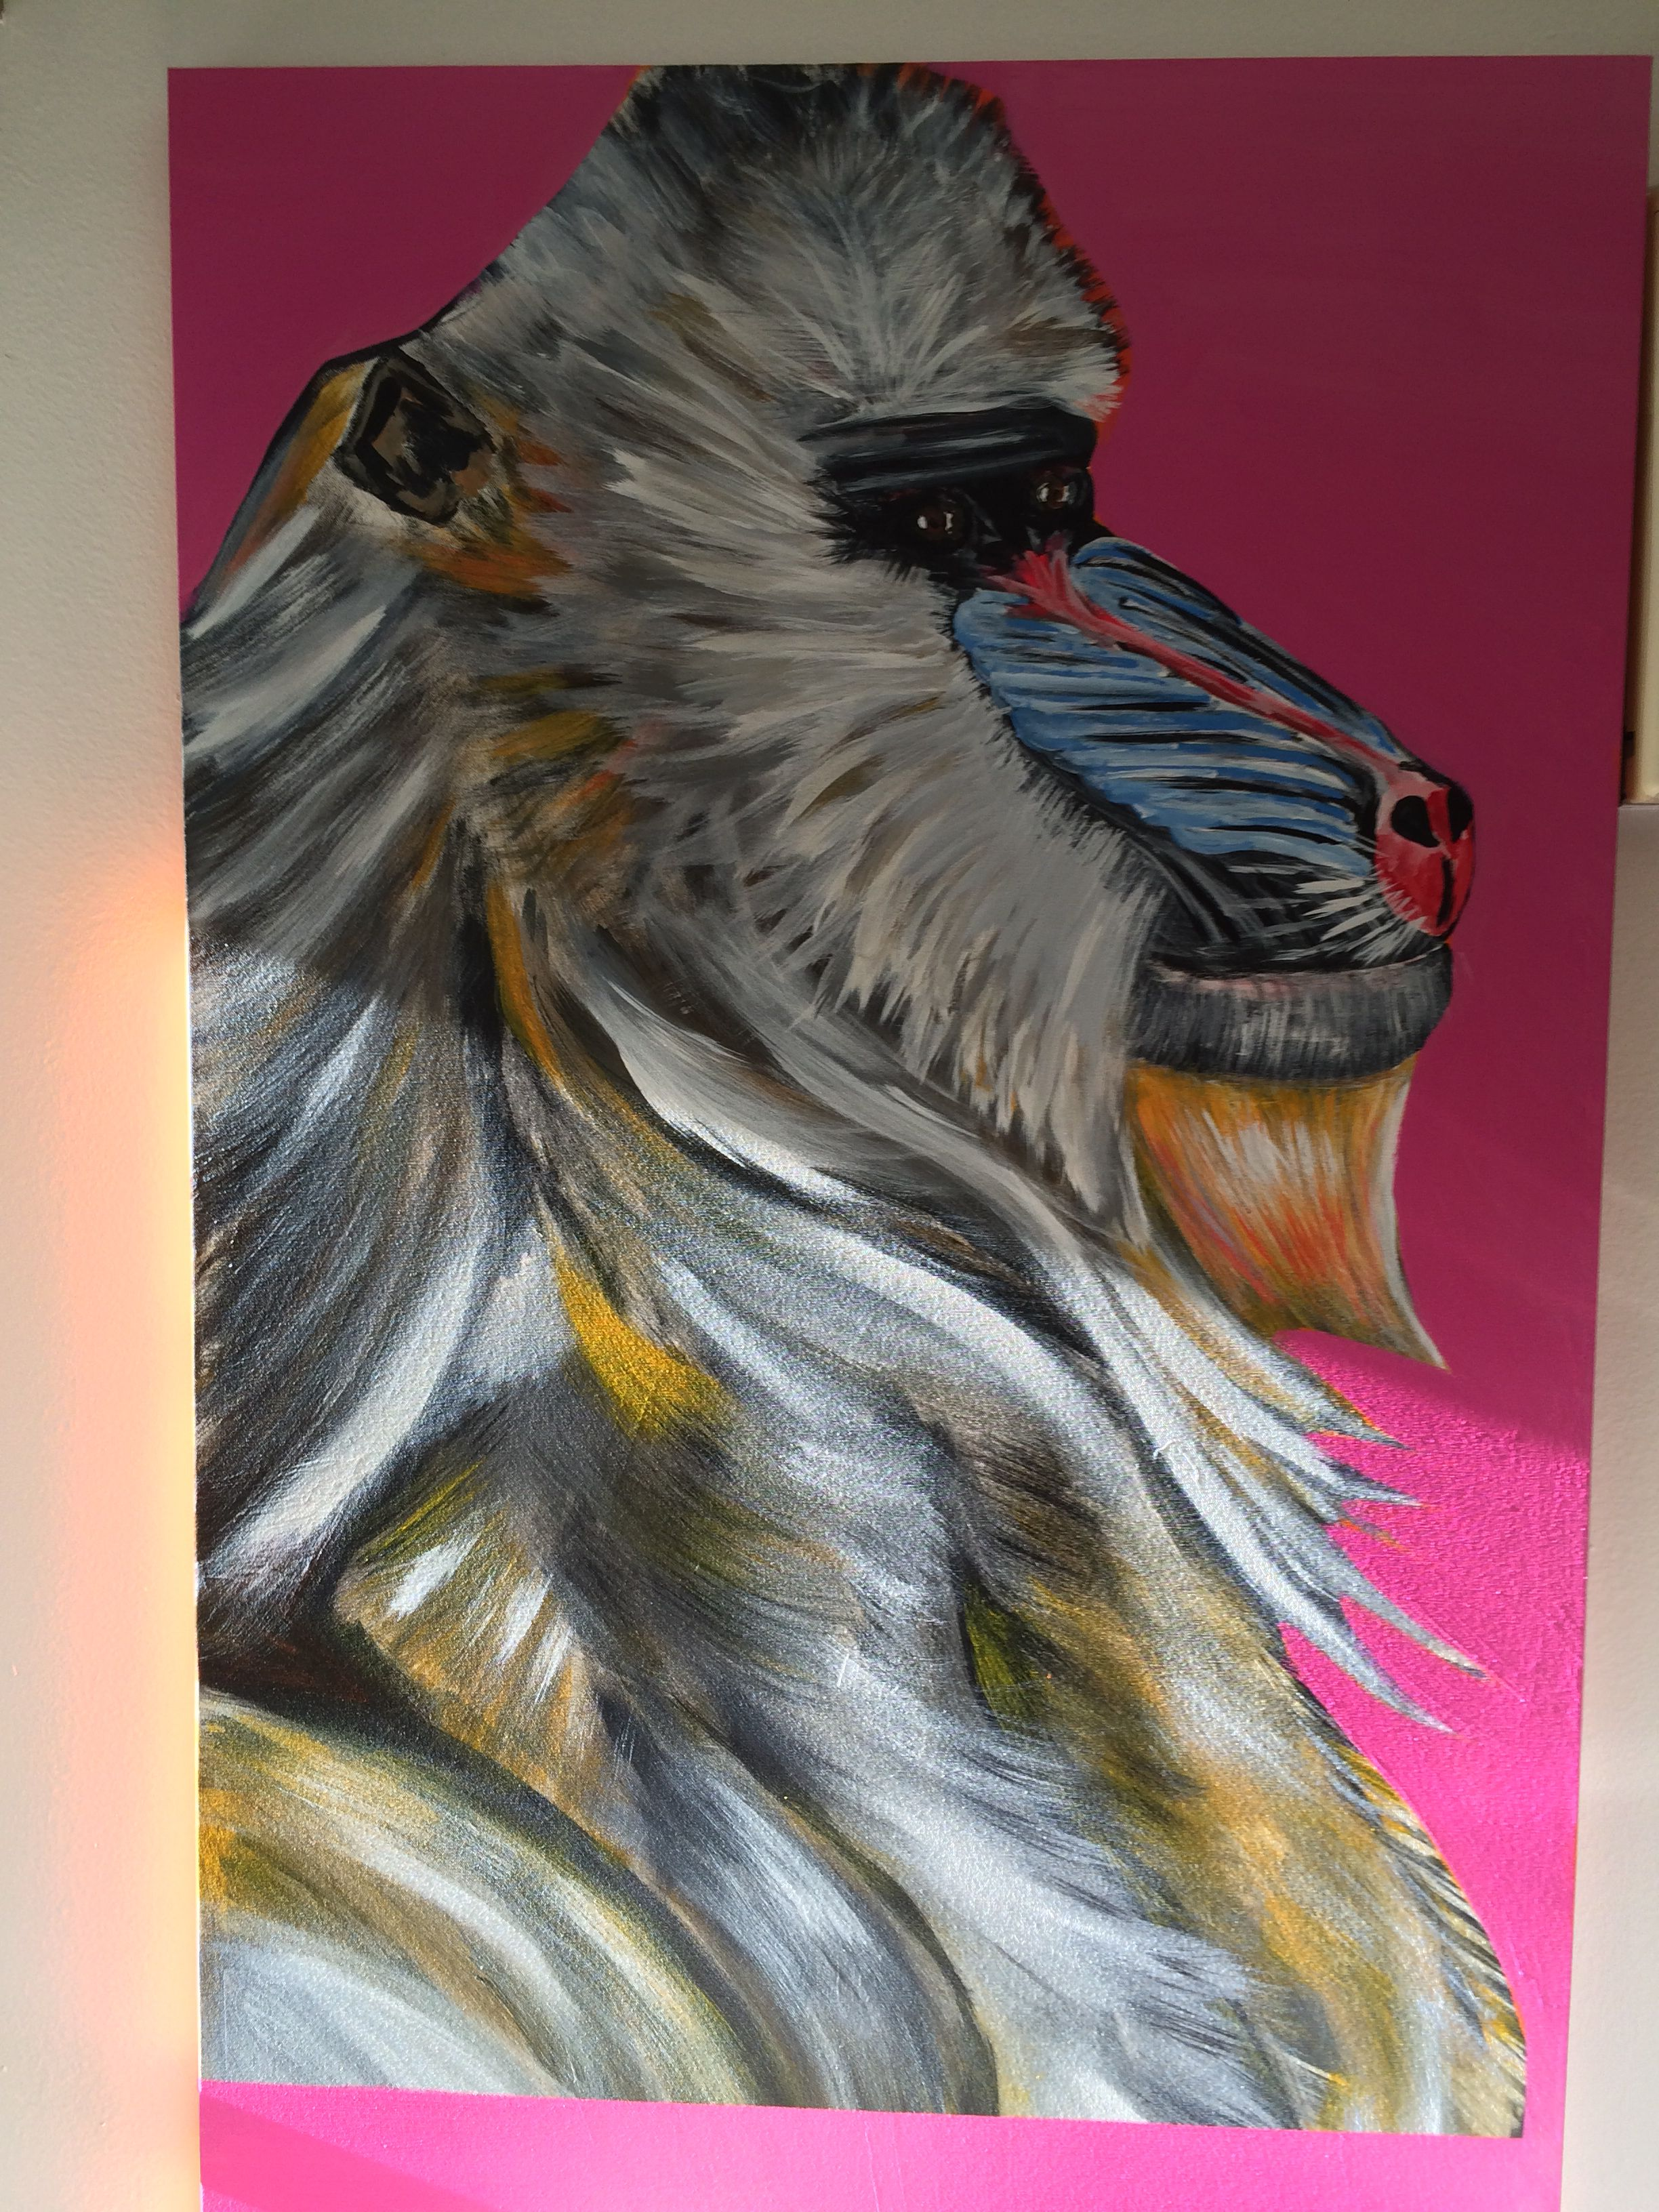 Mandrill acrylic on canvas 5 ft by 3 ft.